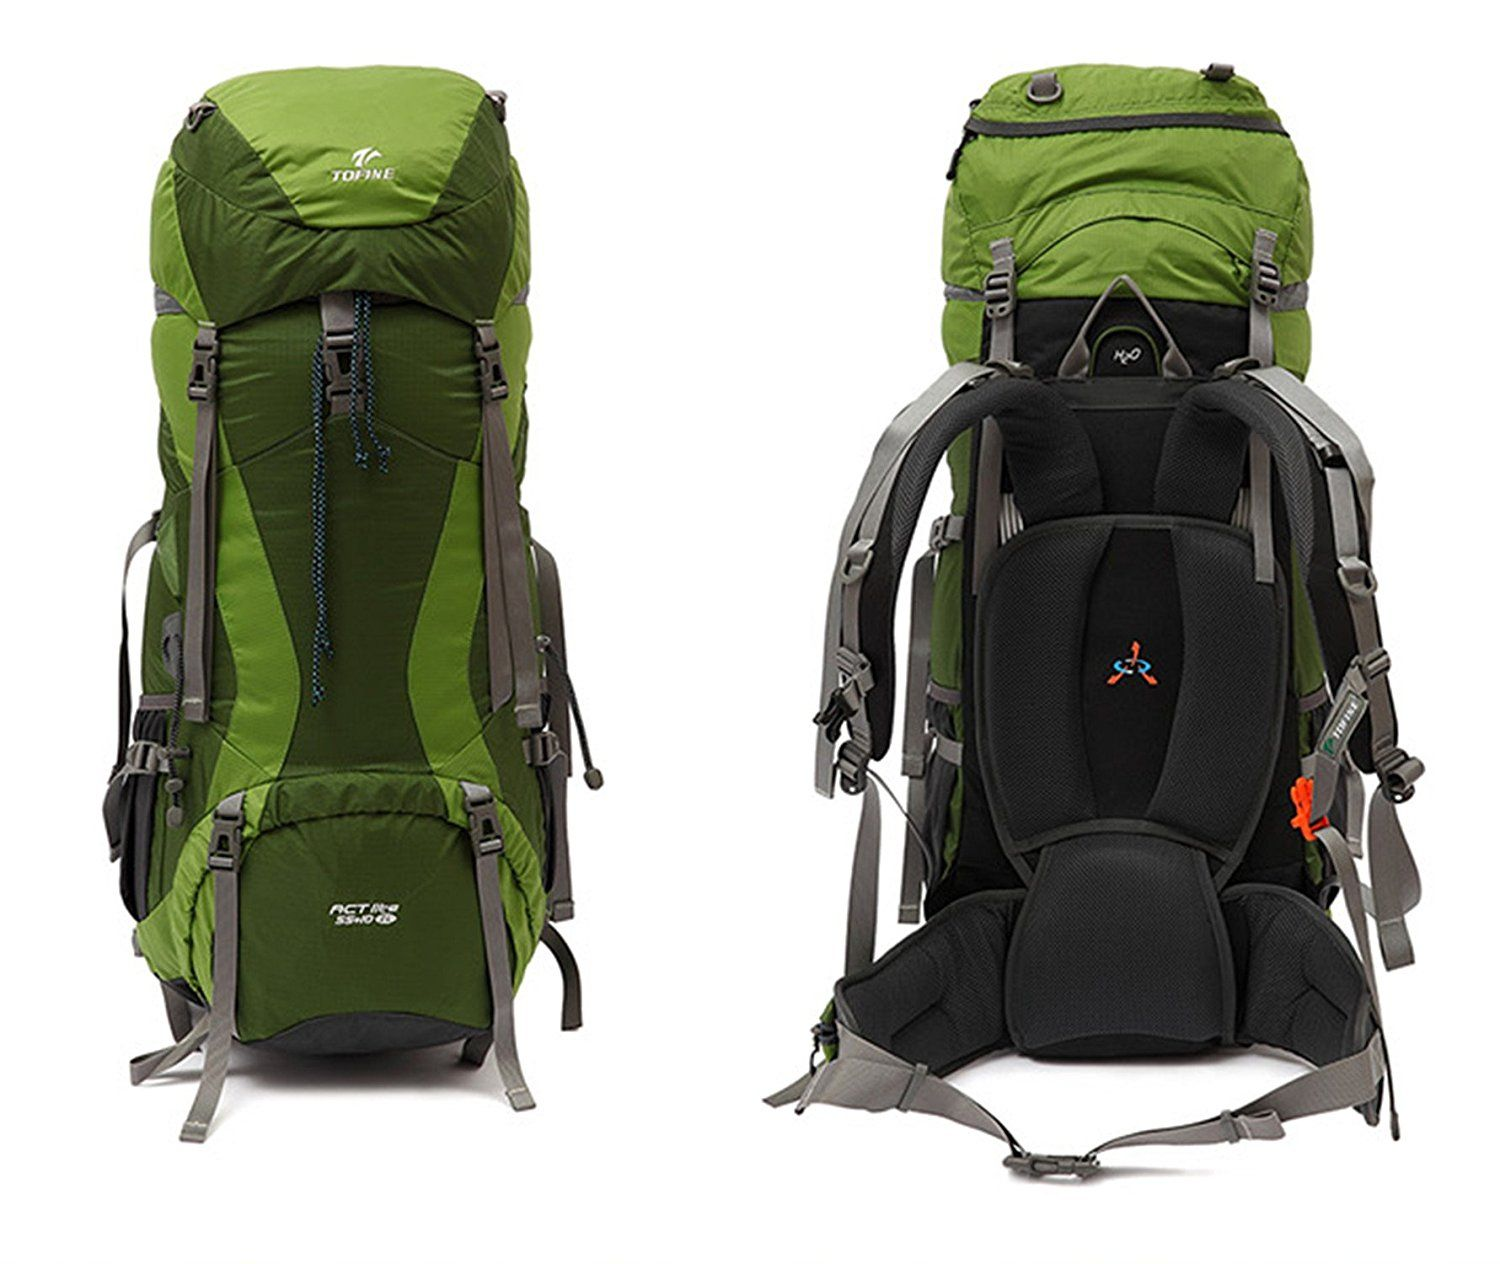 Klau 65L Internal Frame Backpack => Awesome product. Click the image ...